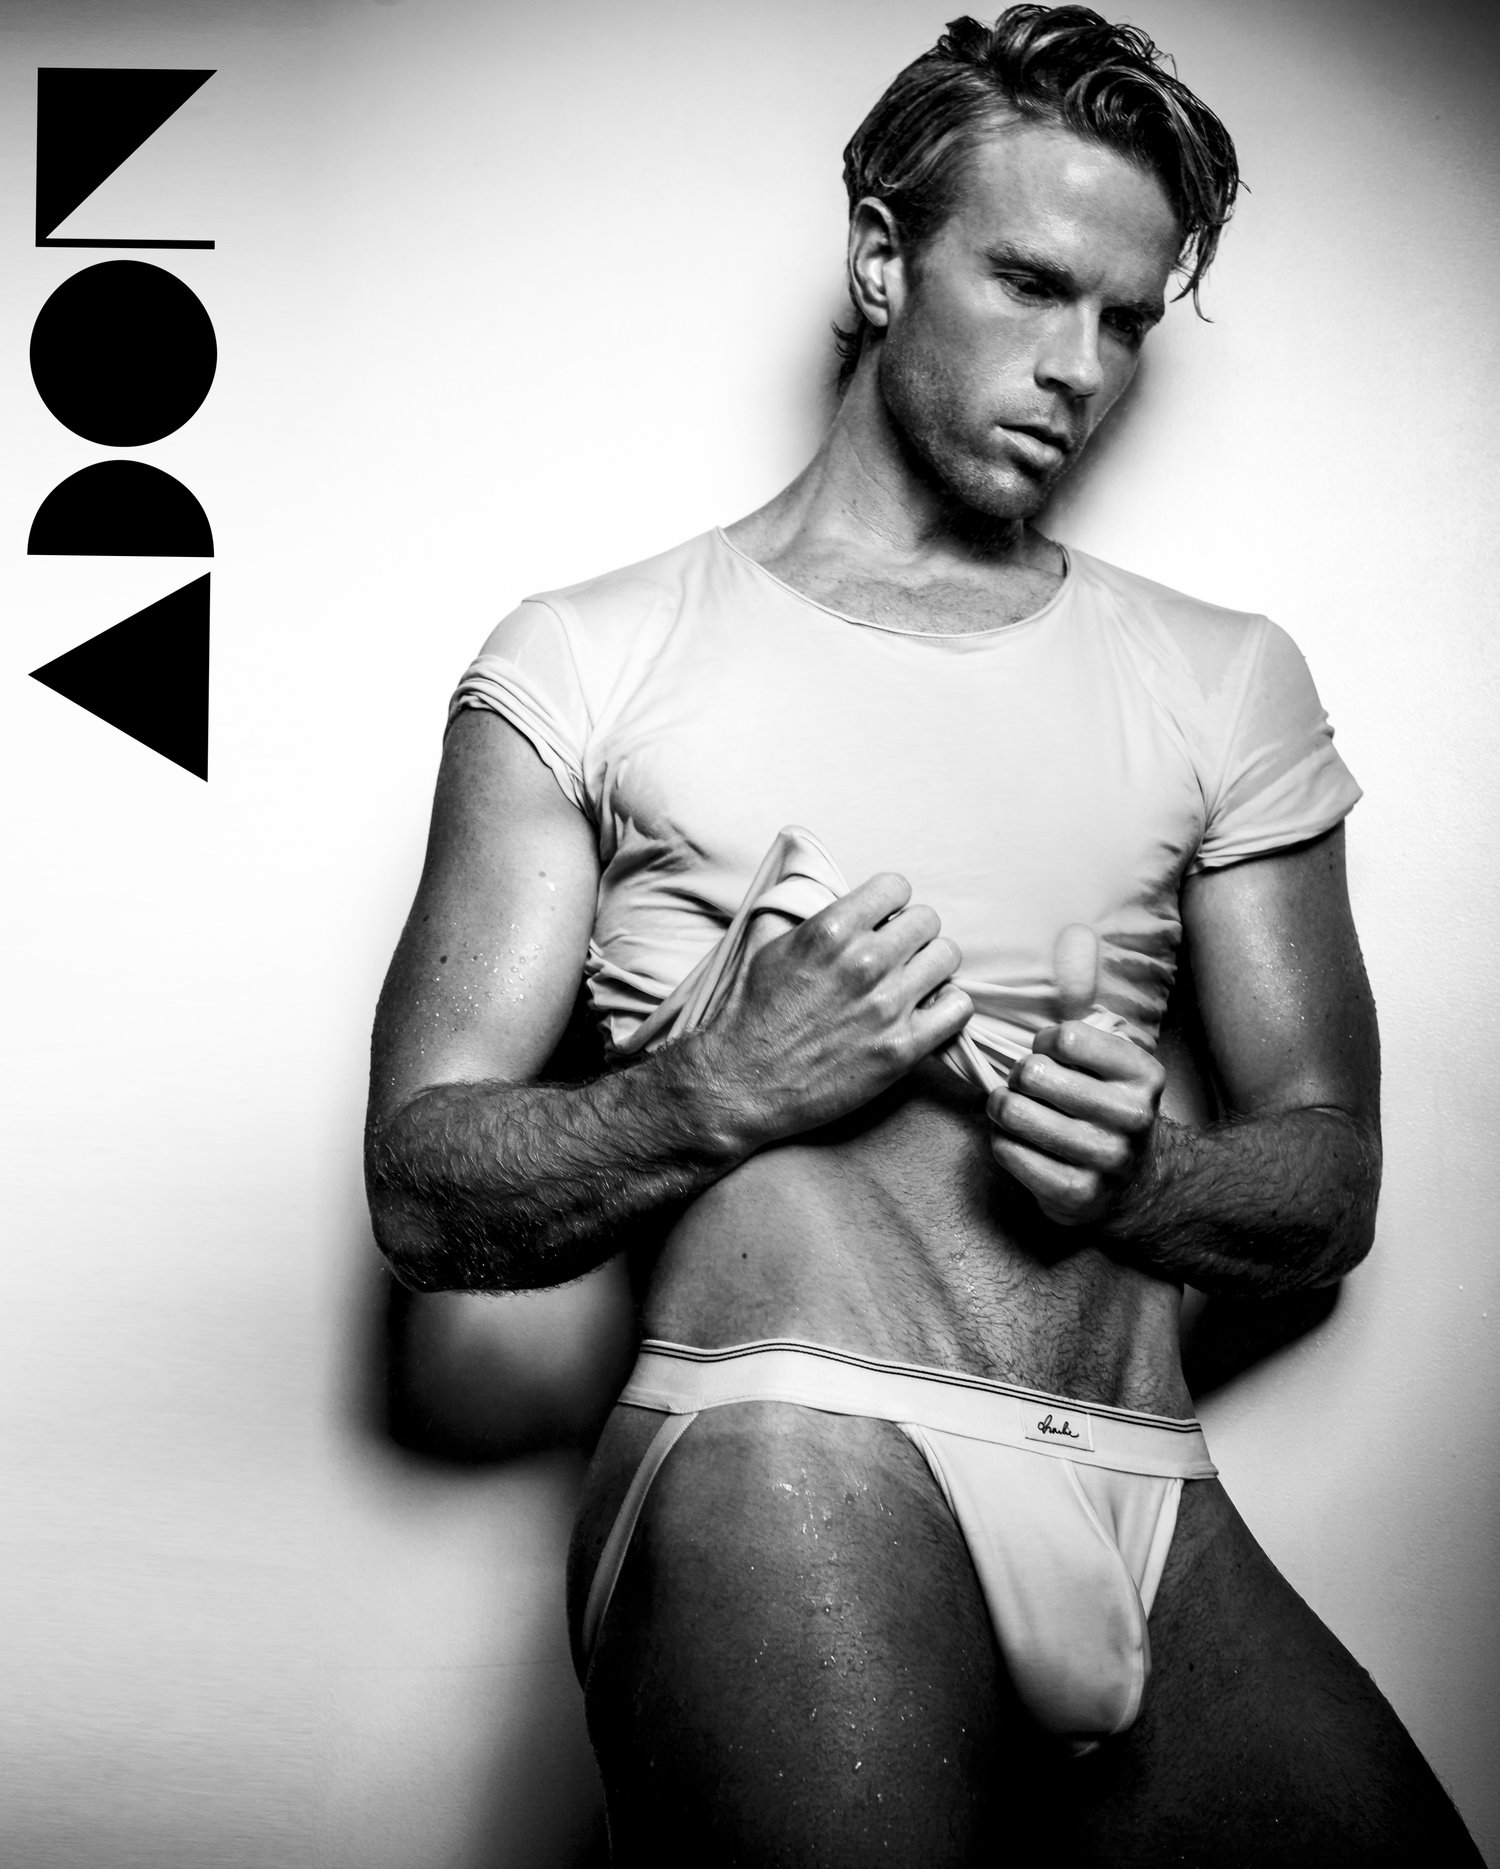 Adon Exclusive: Model Andrew Madan By Rick Day